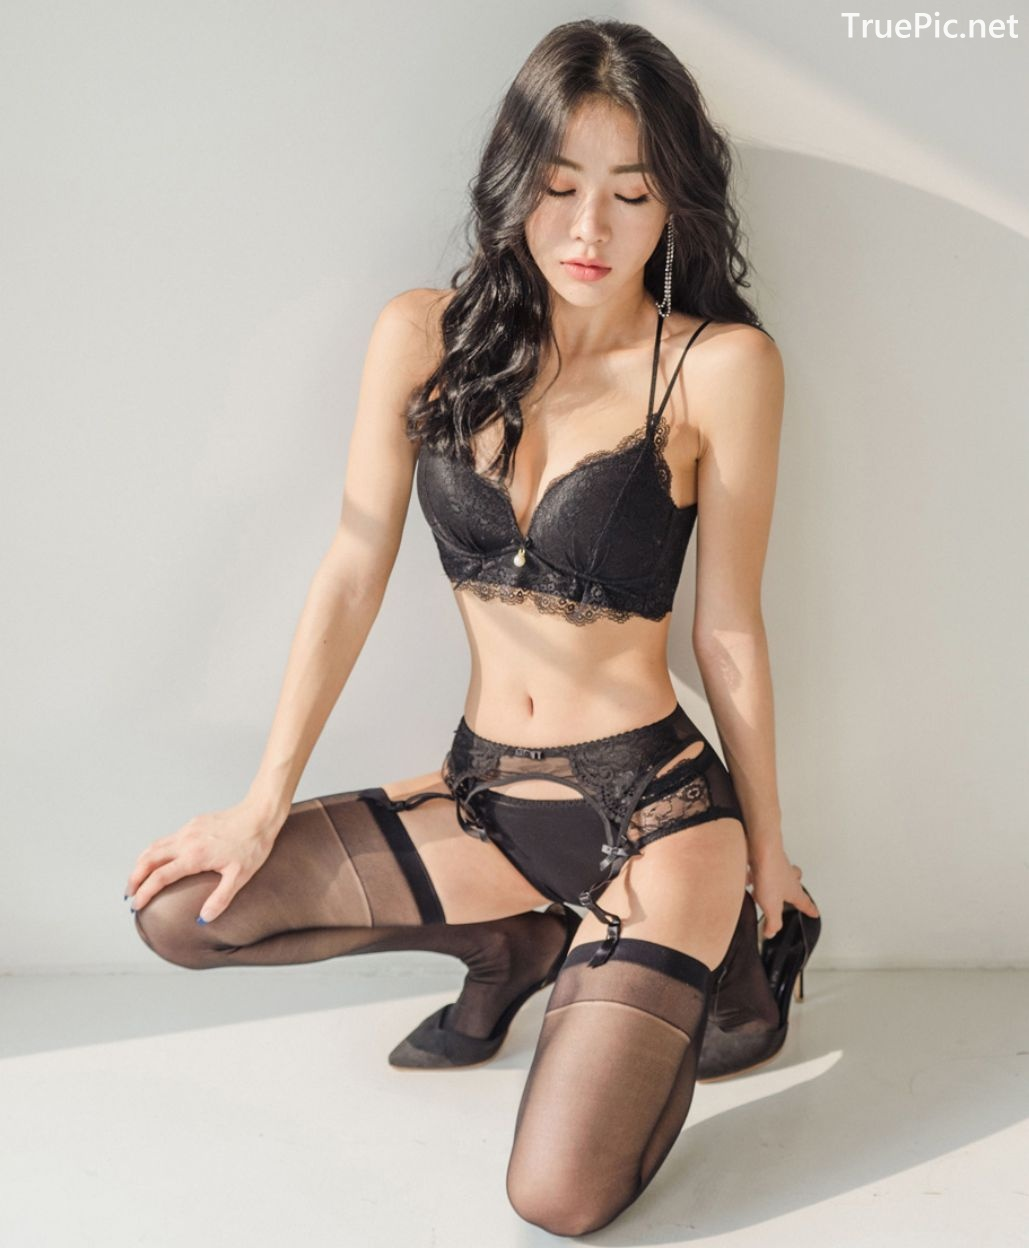 Image-Korean-Fashion-Model-An-Seo-Rin-7-Lingerie-Set-For-A-Week-TruePic.net- Picture-5